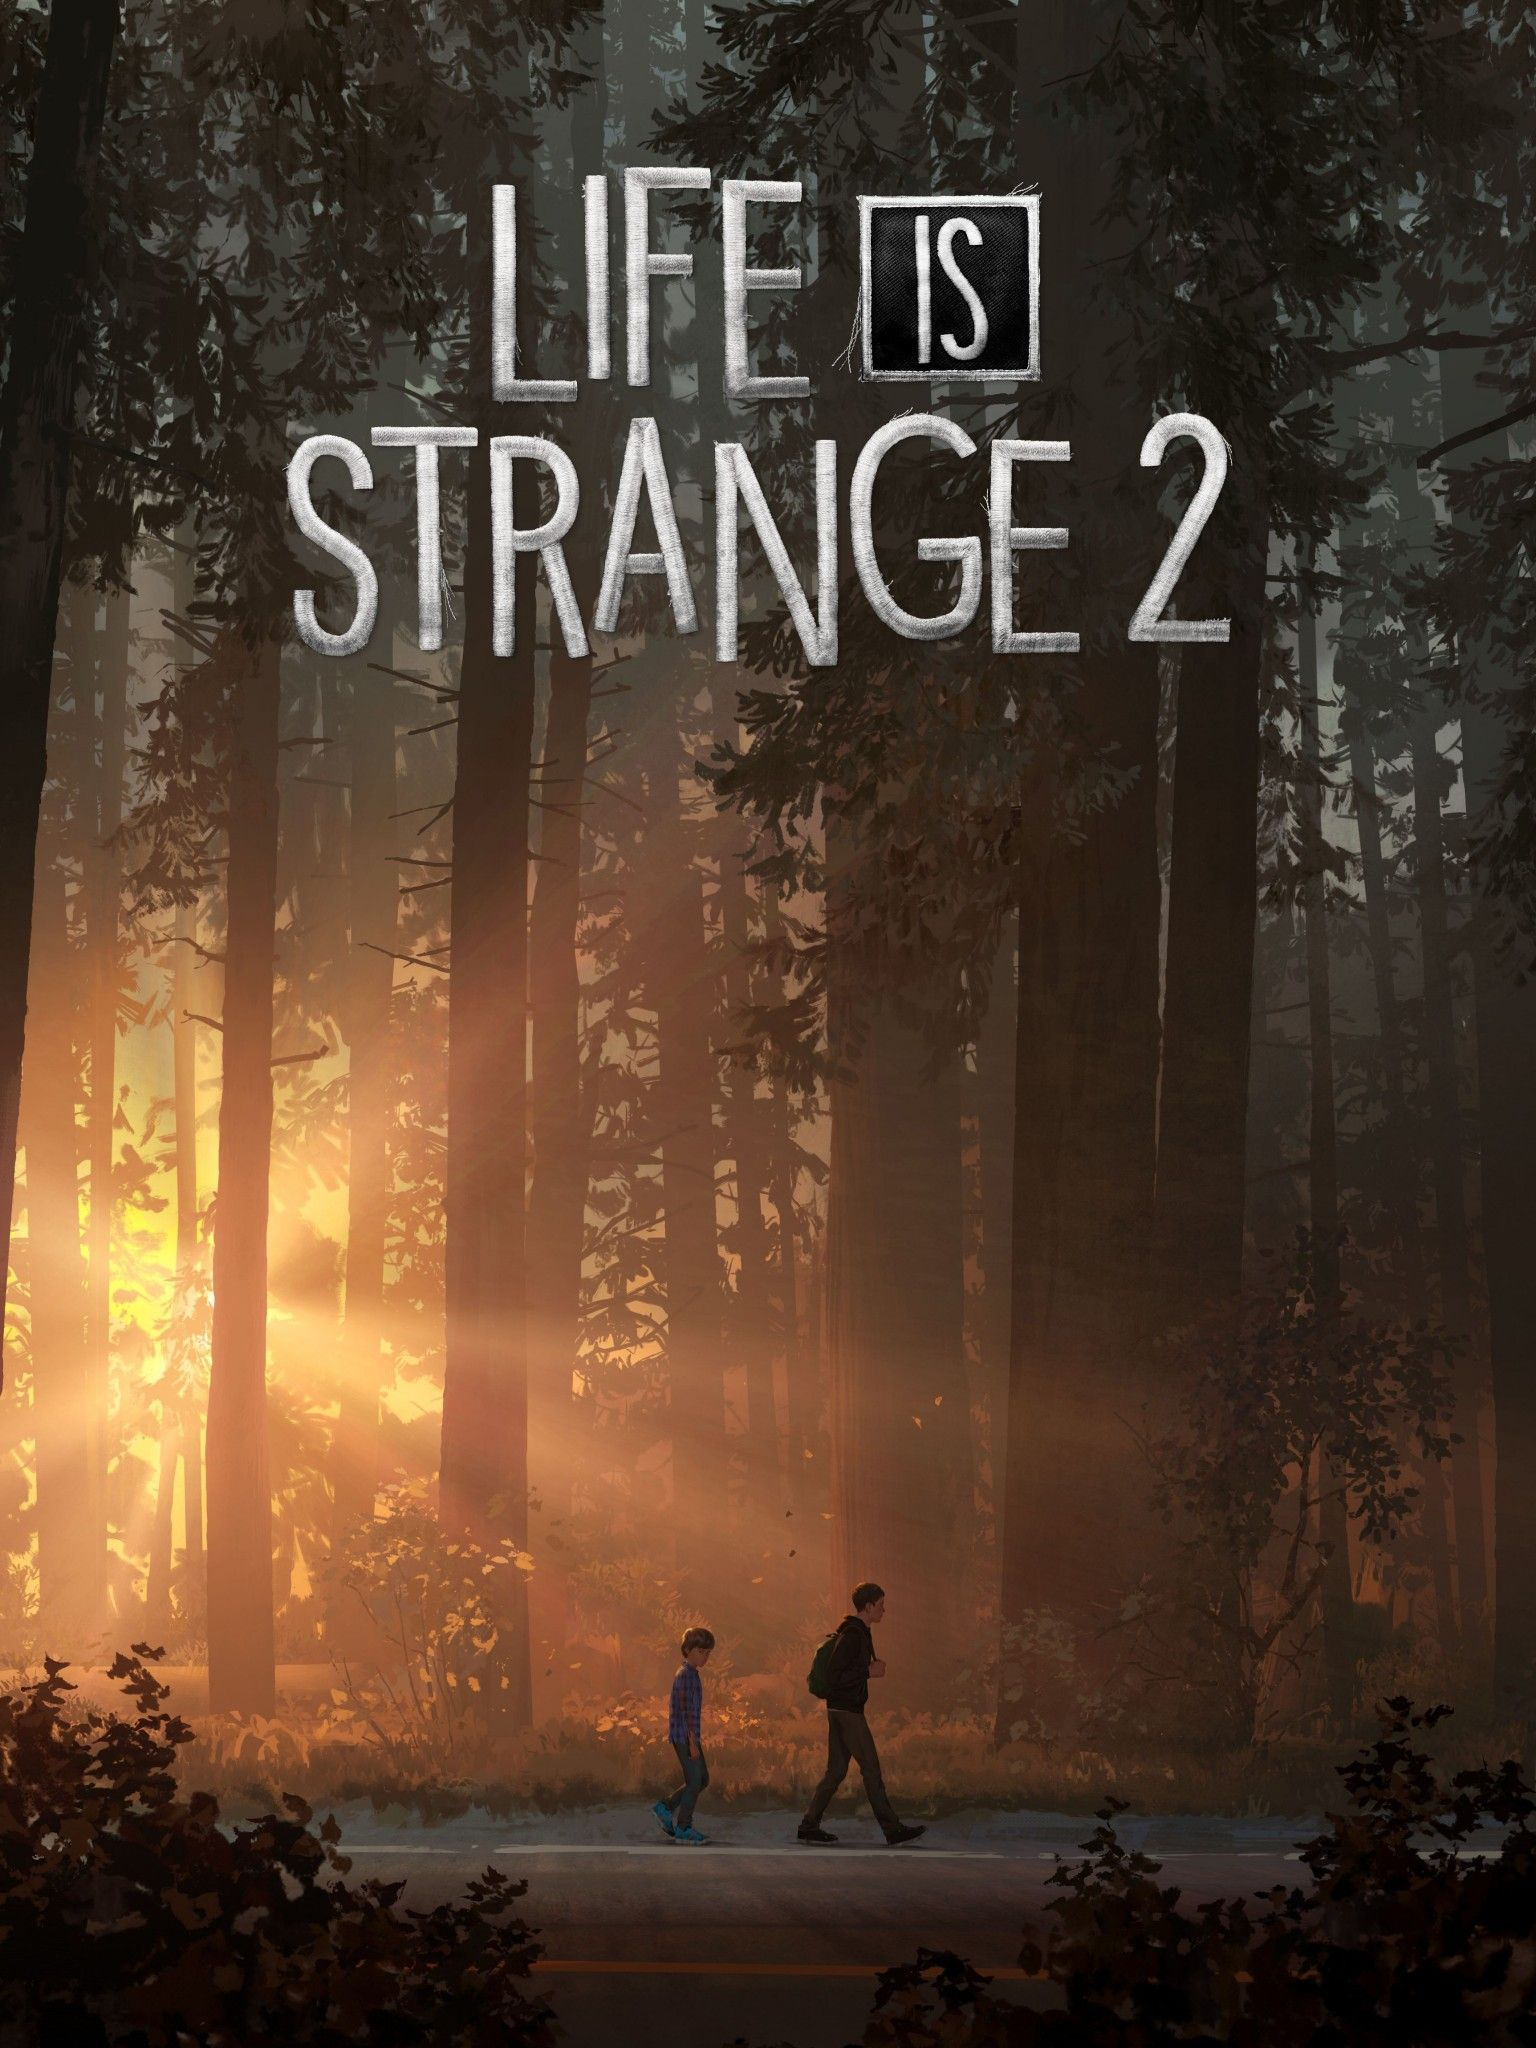 life-is-strange-2-1536x2048-playstation-4-xbox-one-pc-games-4k-8k-15552